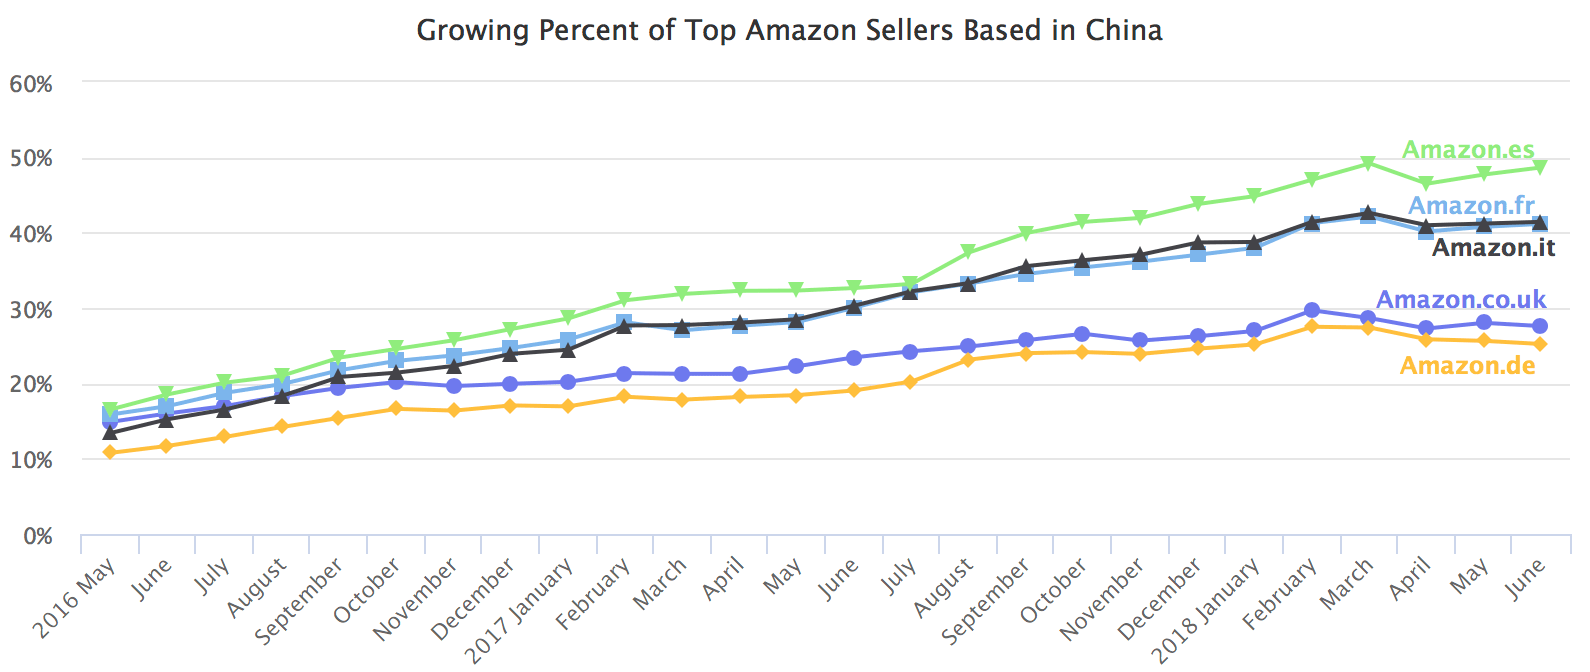 Percent of top Amazon sellers based in China